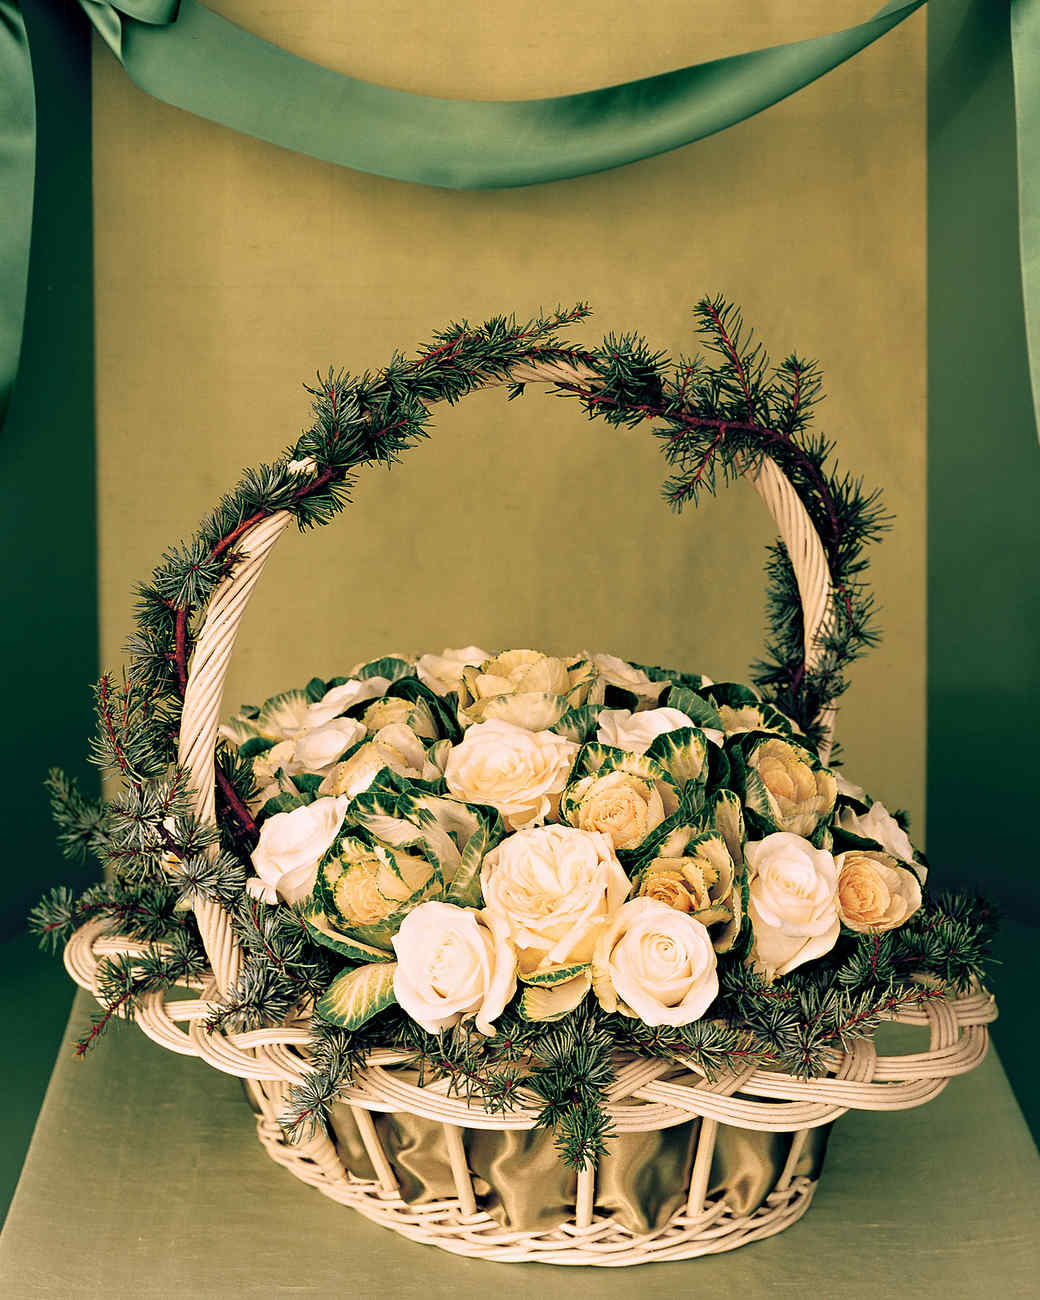 Roses and Kale Basket